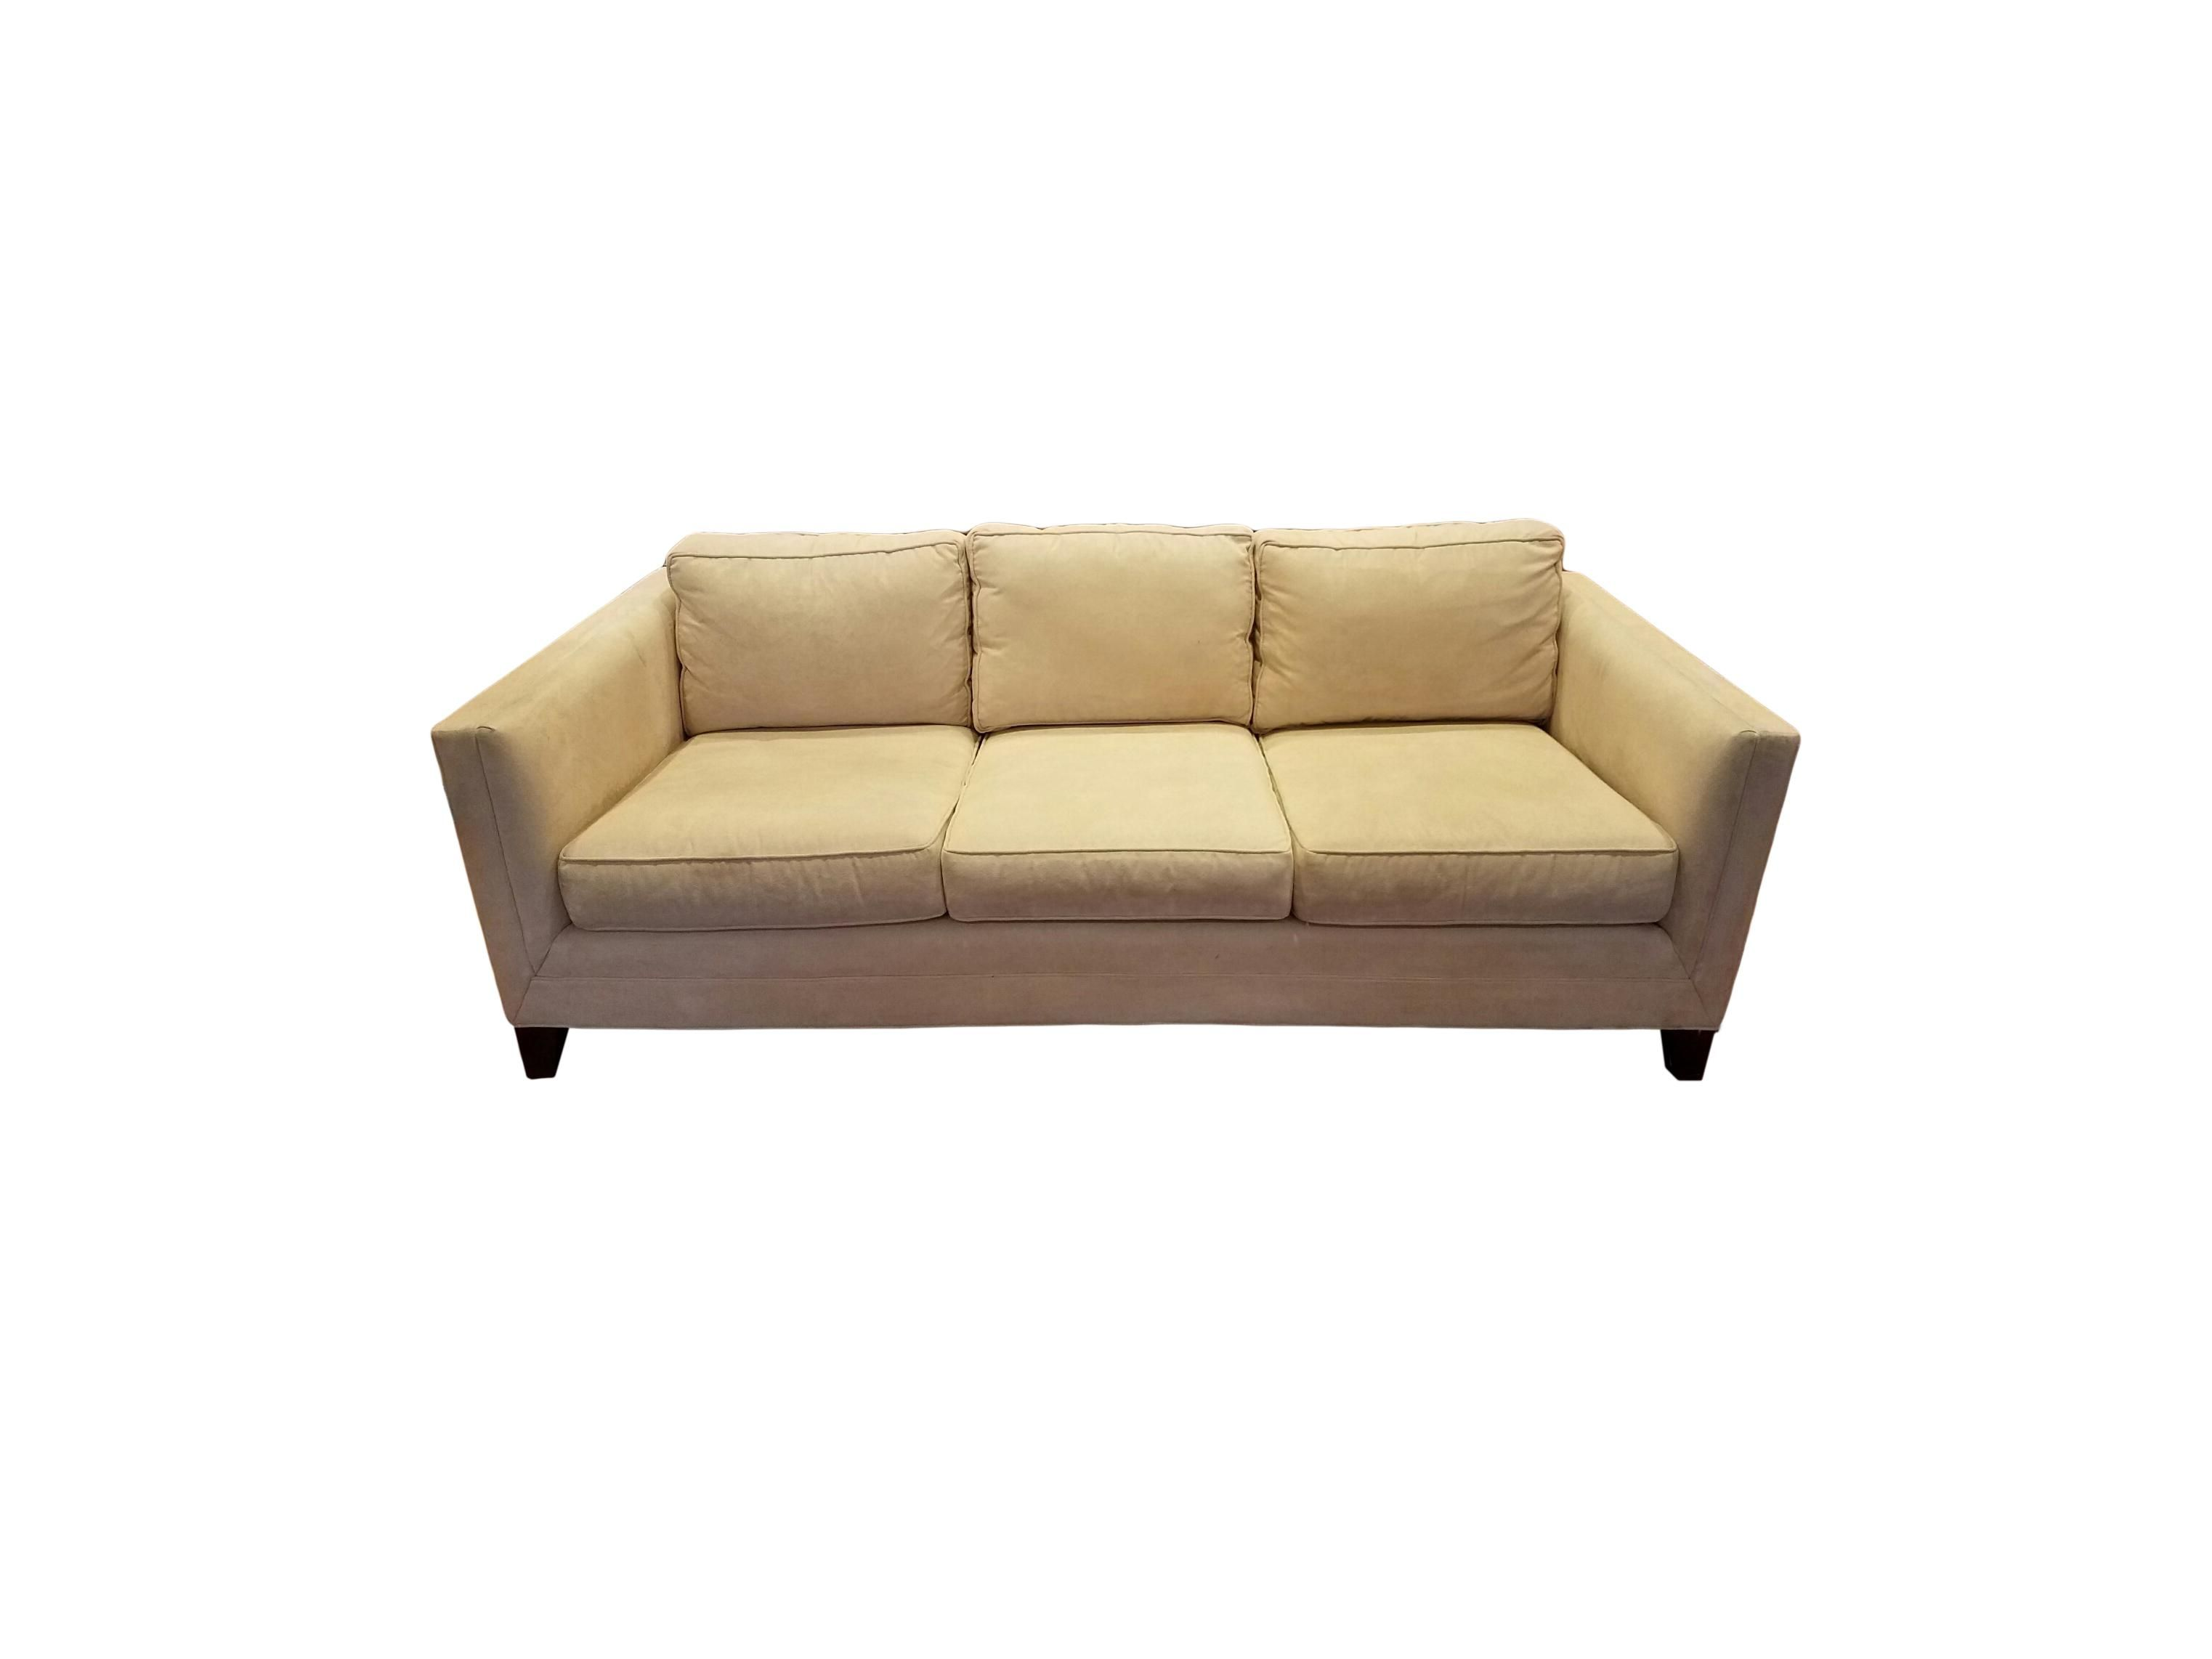 mitchell gold sofa. Top Mitchell Gold Sofa Hussen N